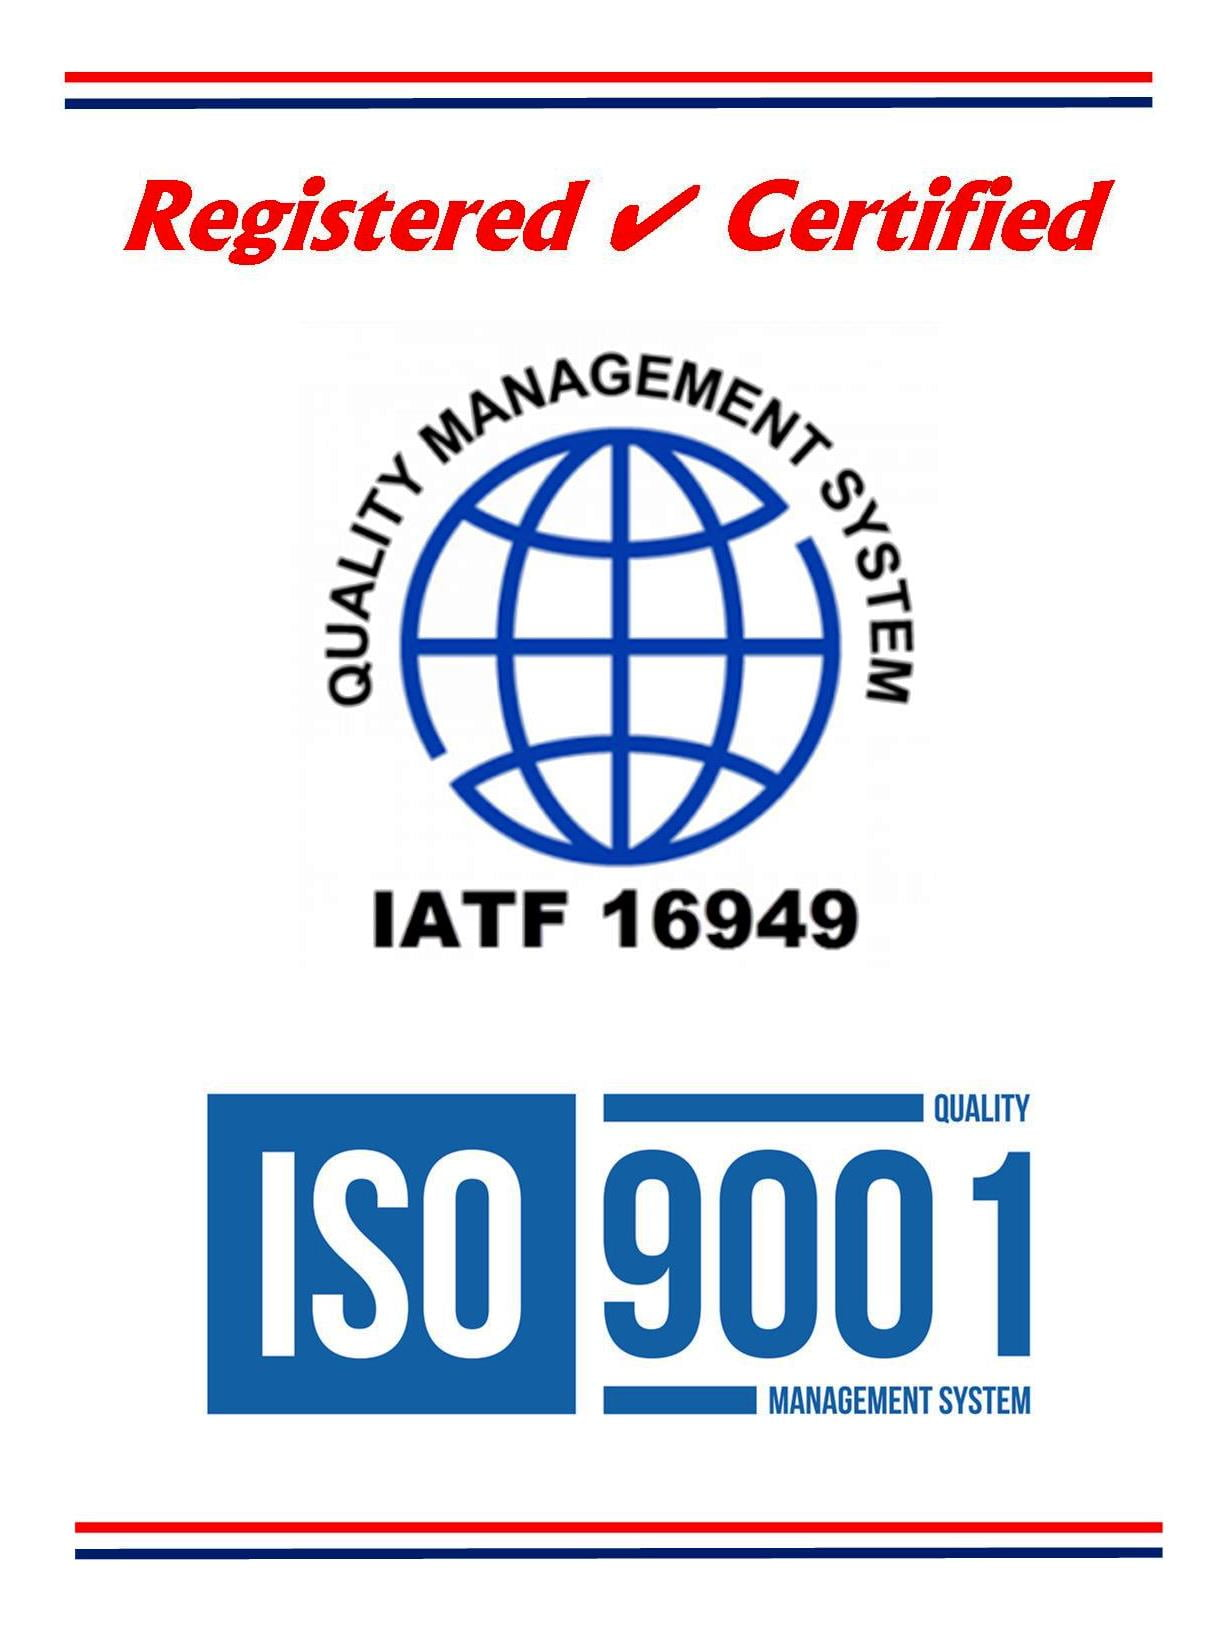 Quality Certifications